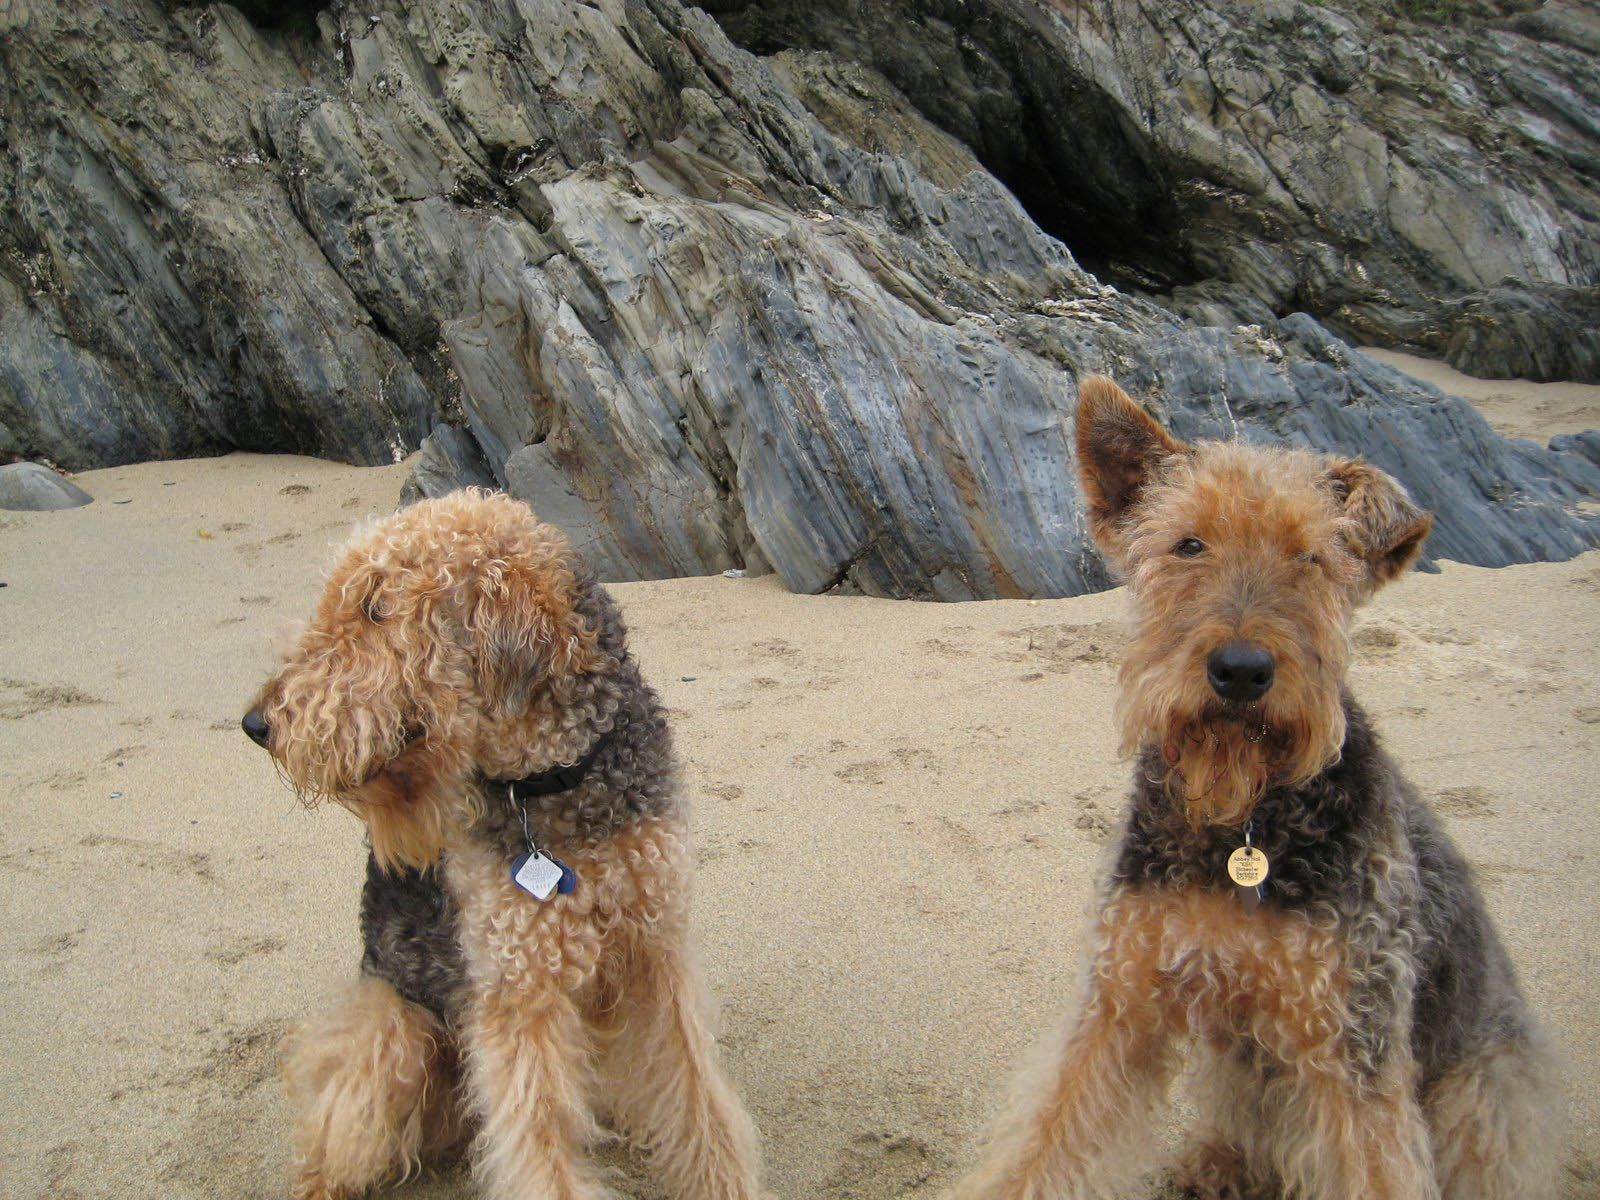 Beautiful Airedale Terrier Photo Airedale Terrier Airedale Dogs Terrier